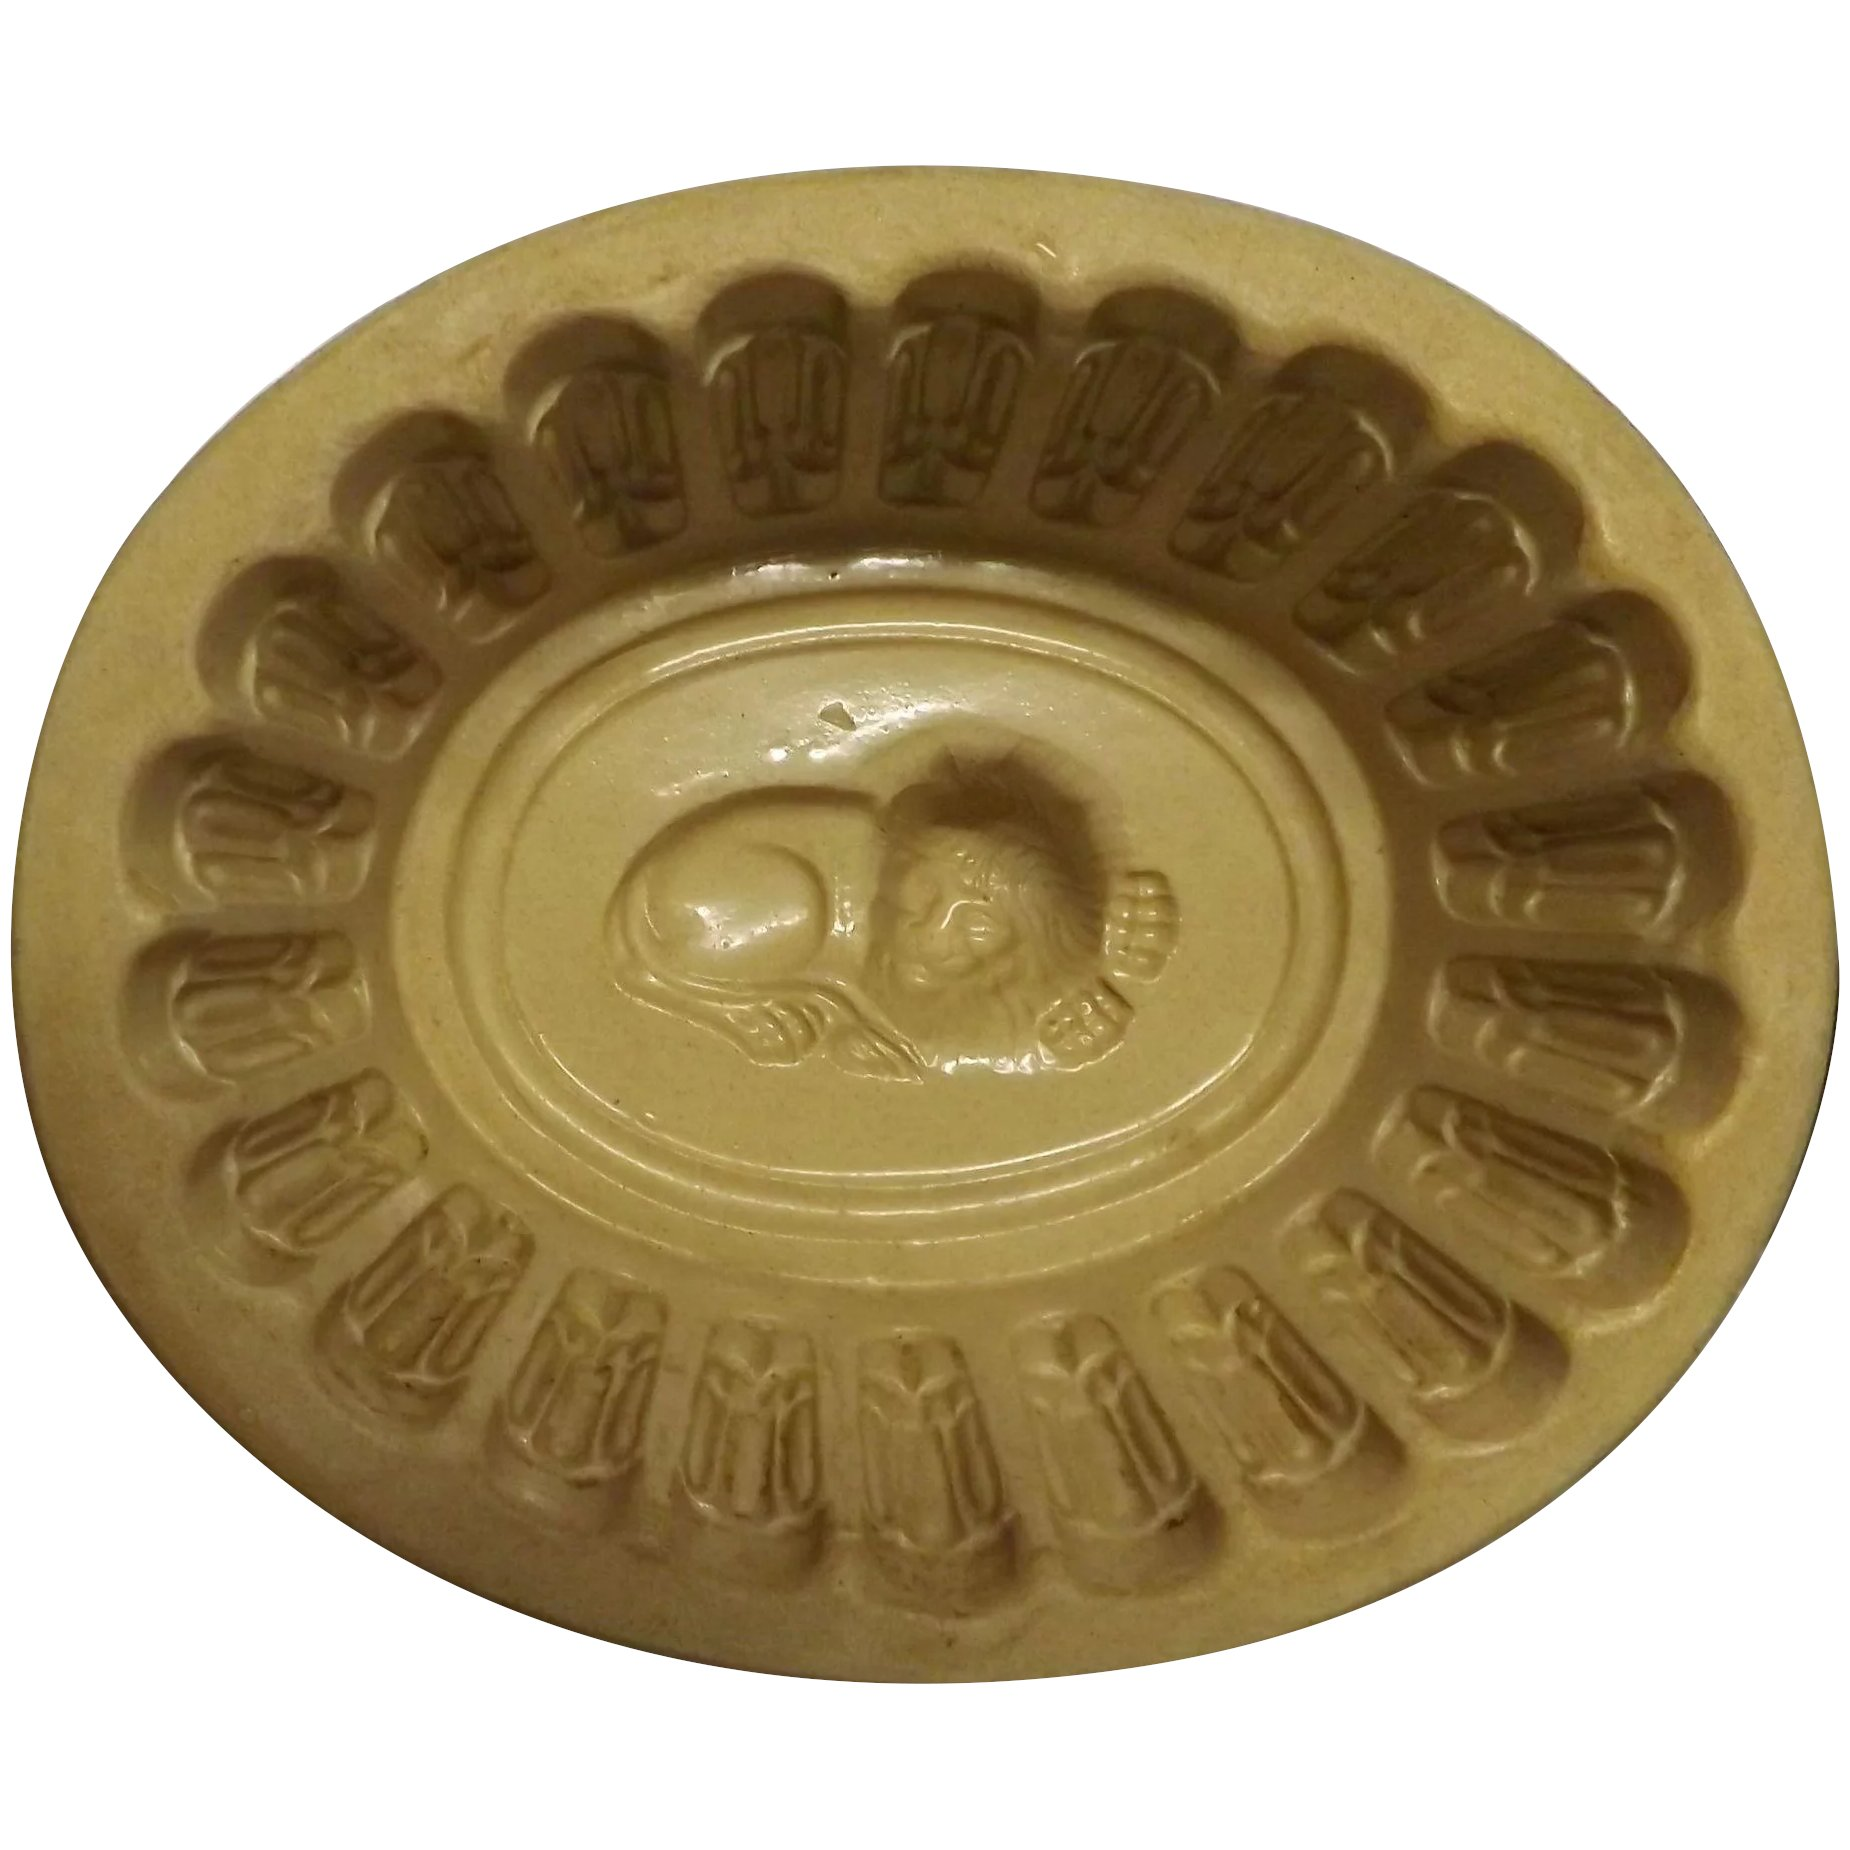 Large Victorian Ceramic Jellied Aspic or Jelly Mold